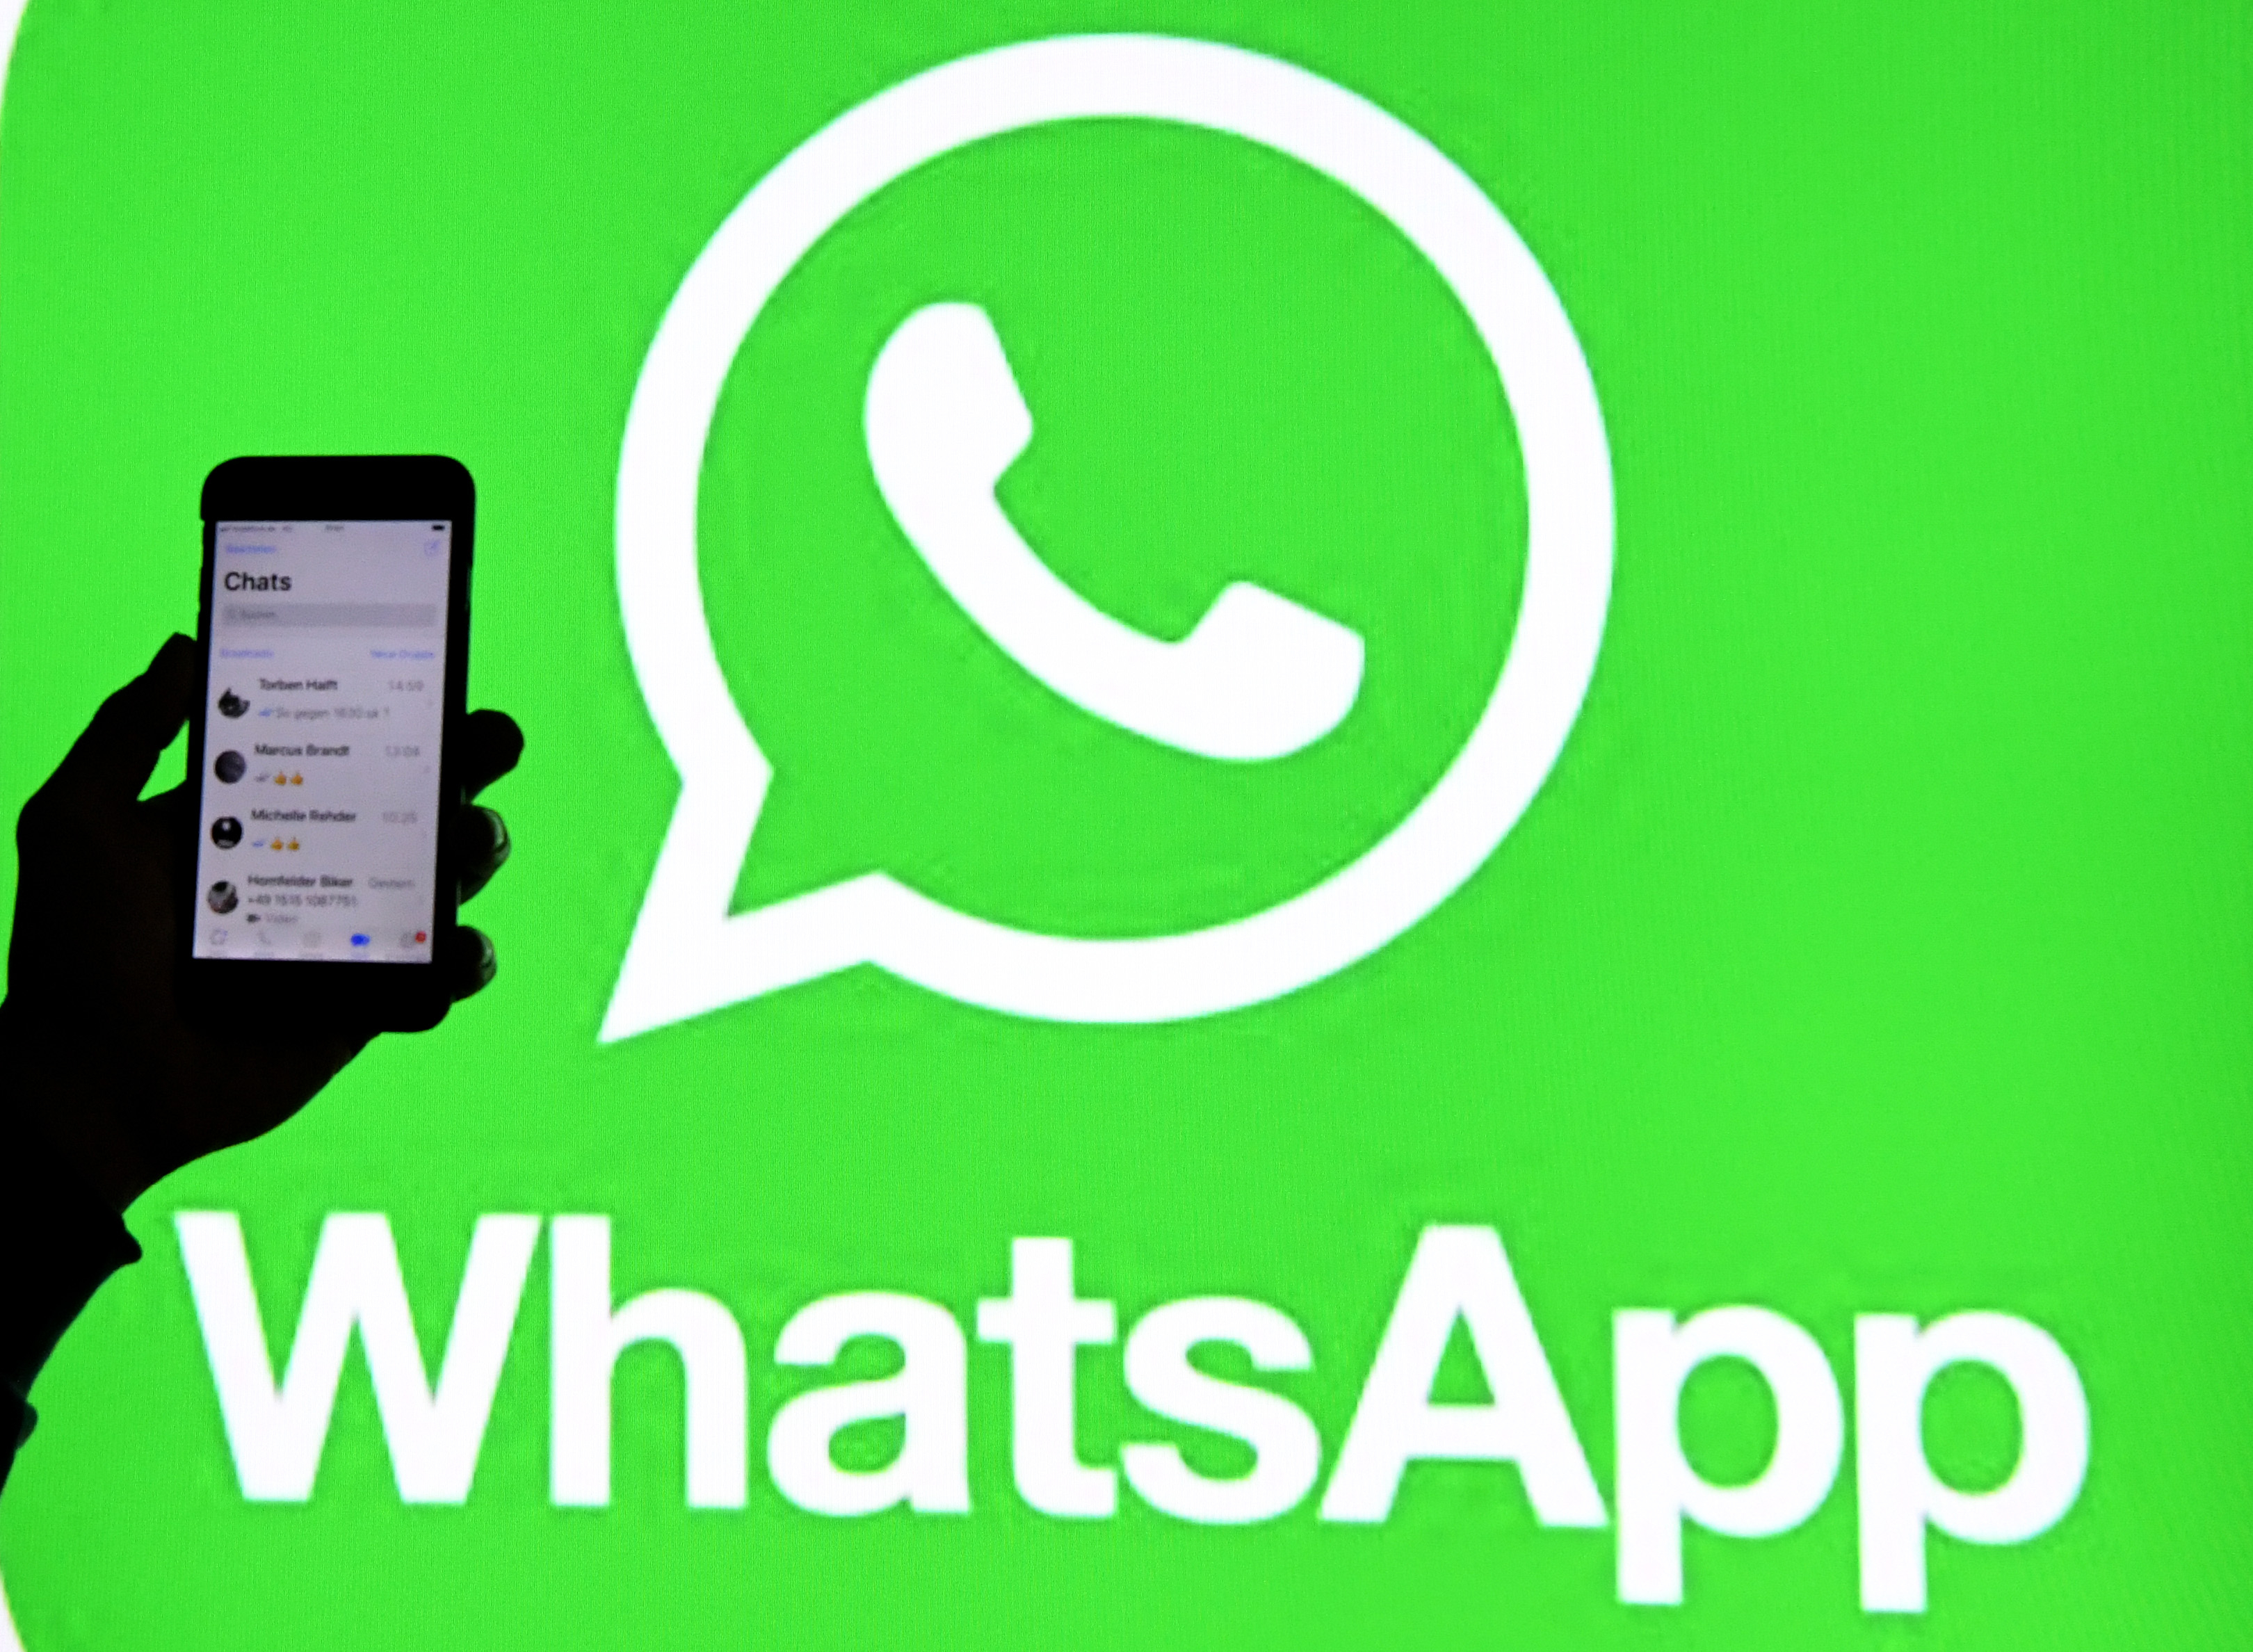 WhatsApp has been targeted by a surveillance attack. Credit: PA